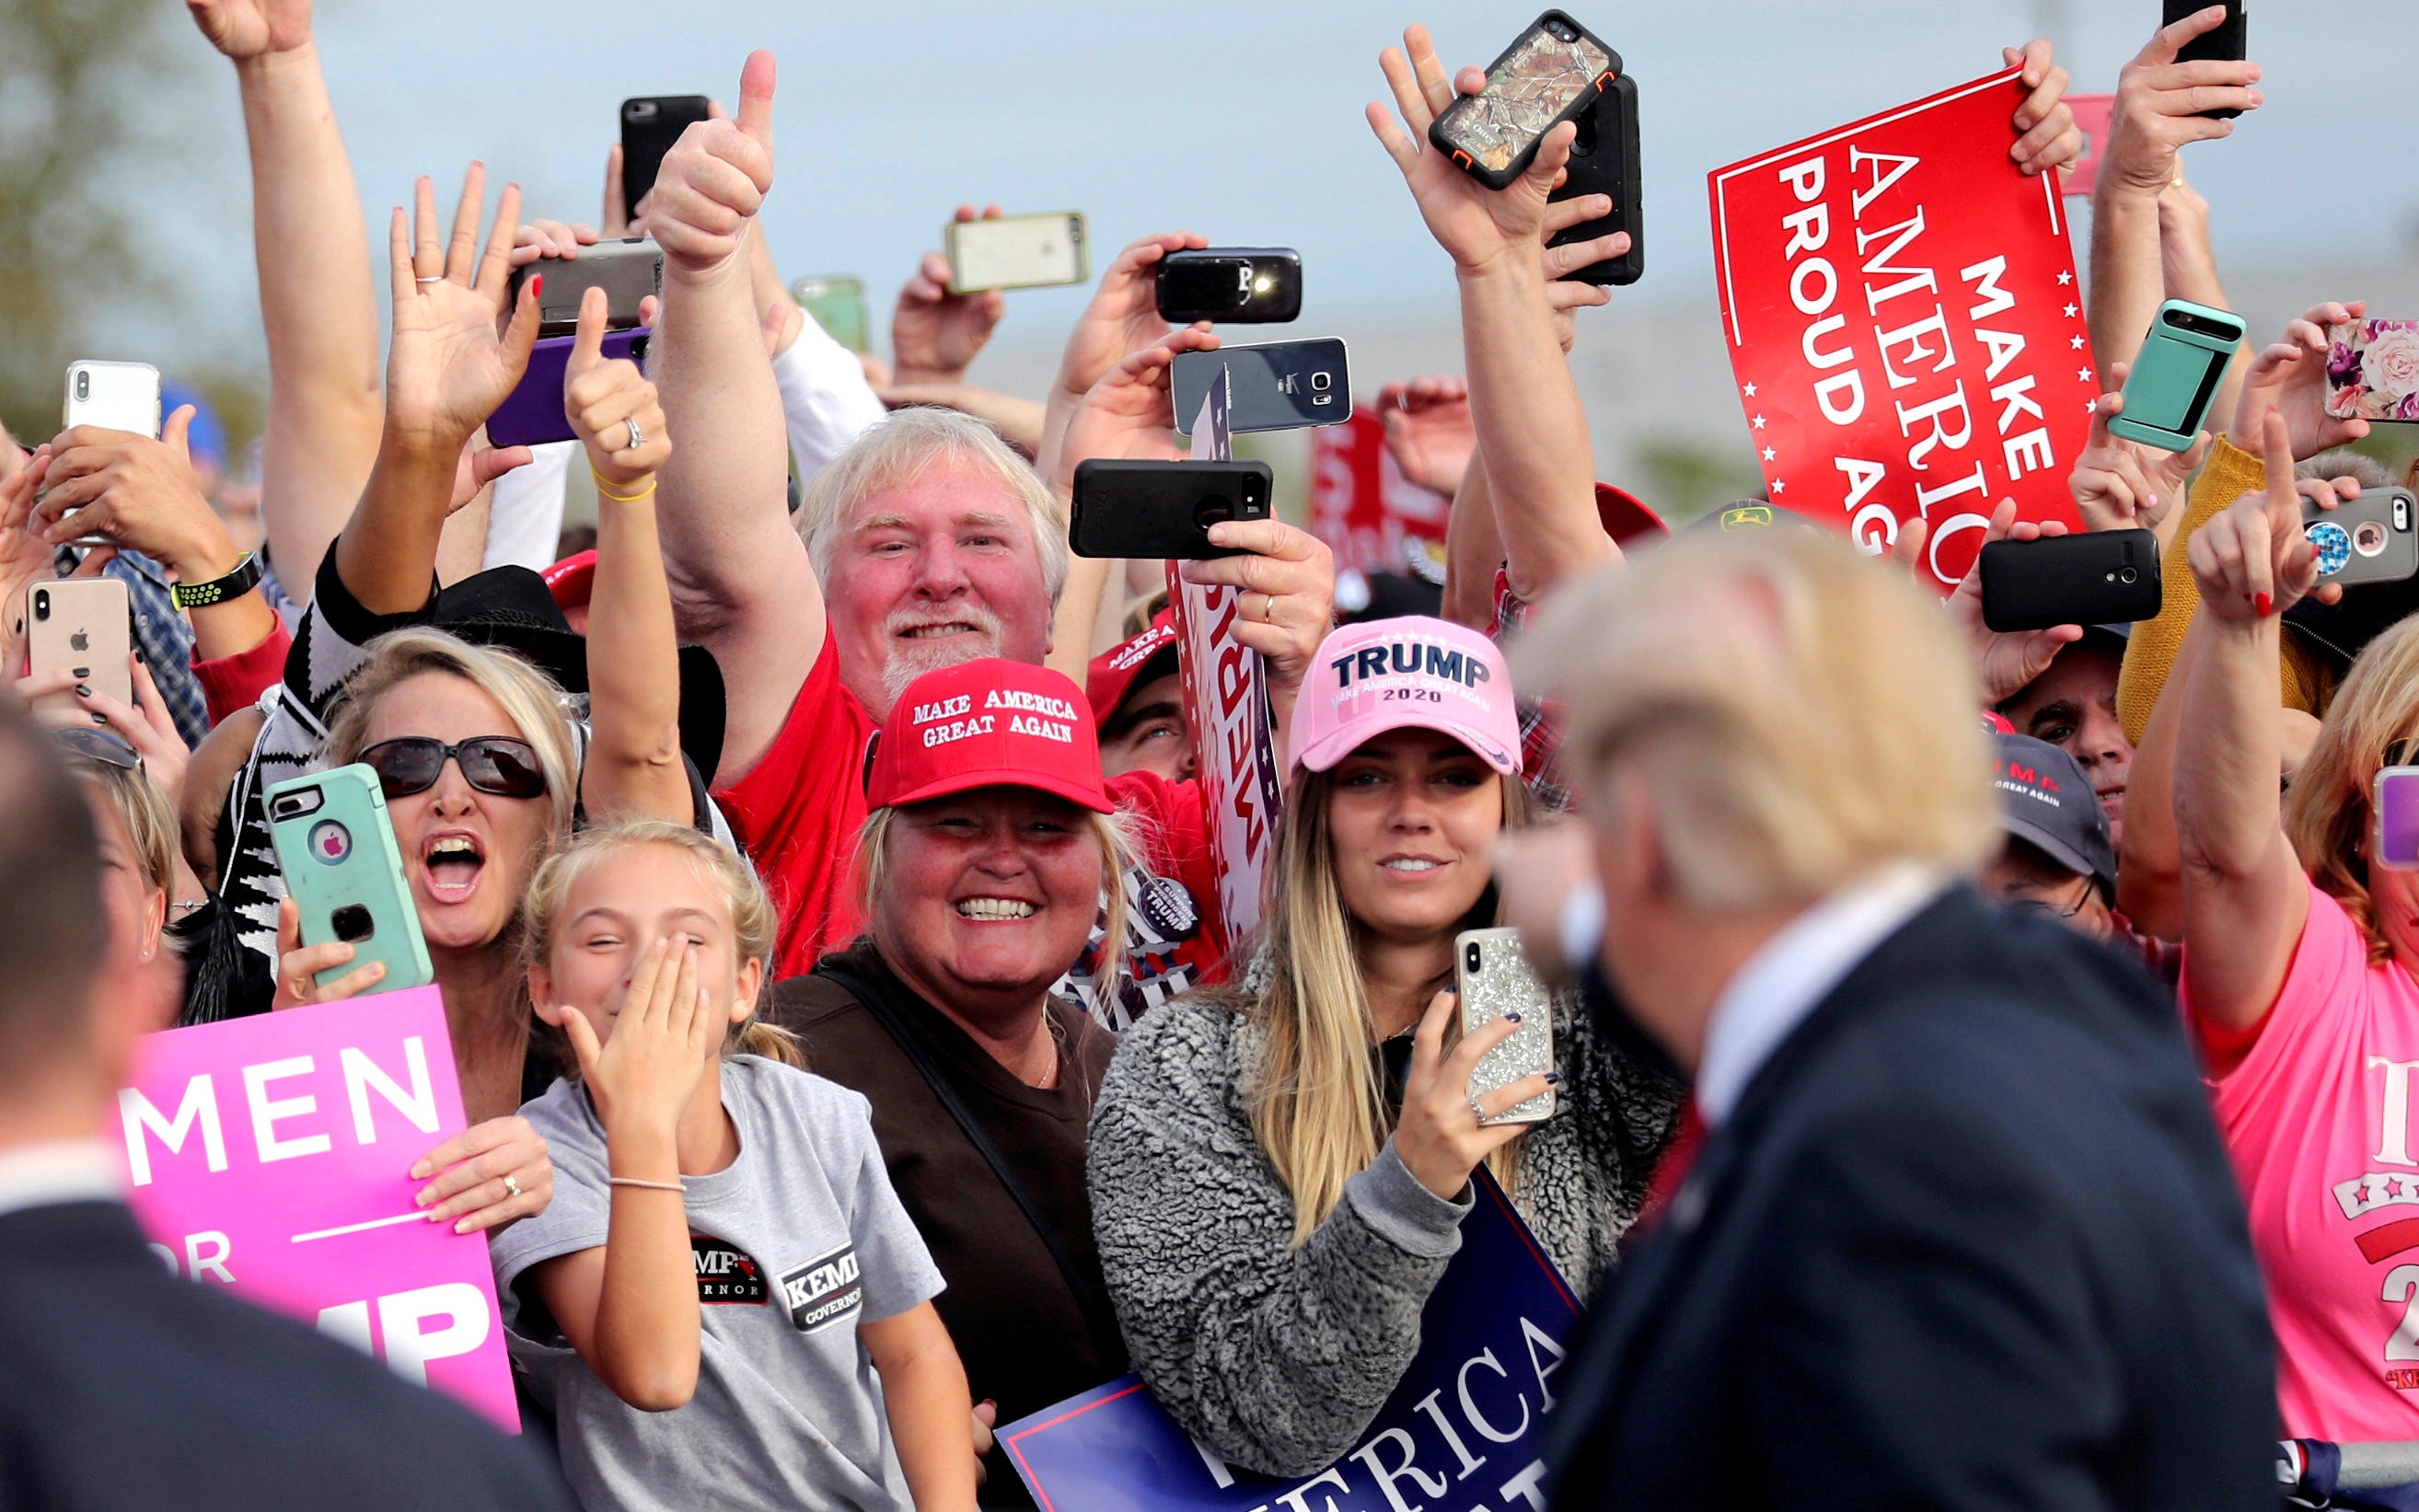 Supporters applaud U.S. President Donald Trump as he arrives to attend a campaign rally at Middle Georgia Regional Airport in Macon, Georgia, U.S., November 4, 2018. REUTERS/Jonathan Ernst/File Photo